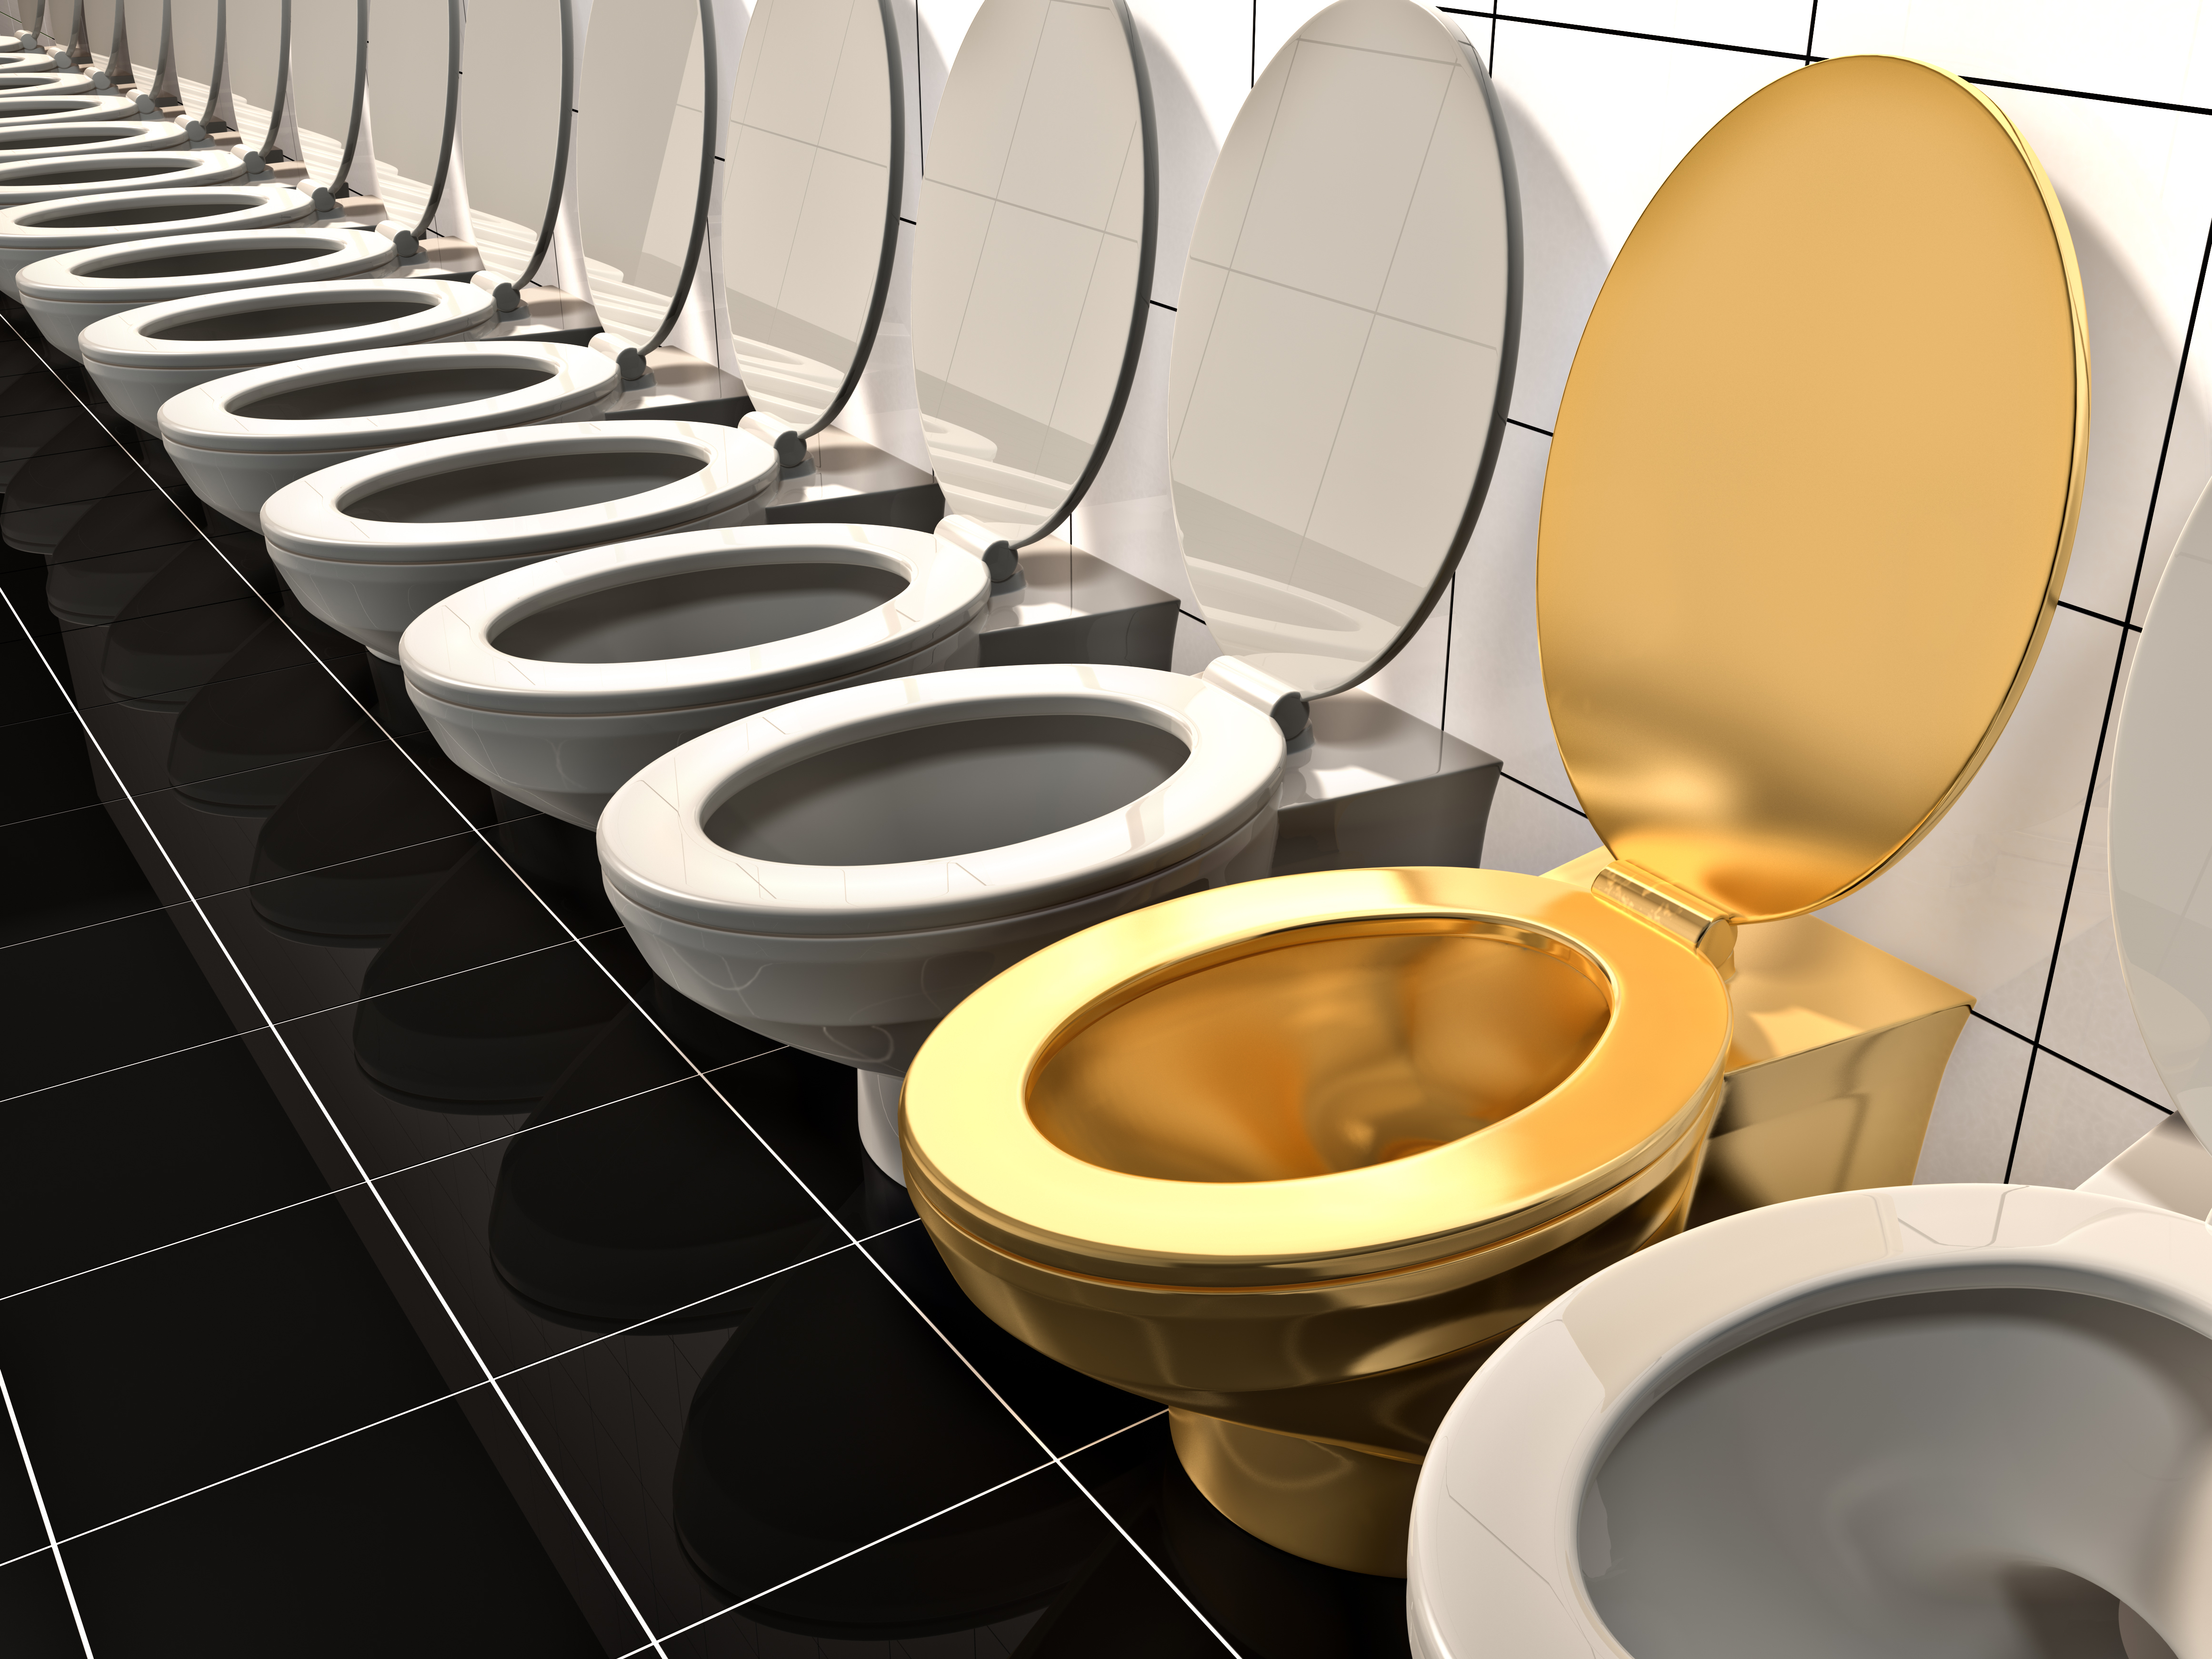 Would You Use An 18 Karat Gold Toilet What If It Was As Part Of An Art Exhibit